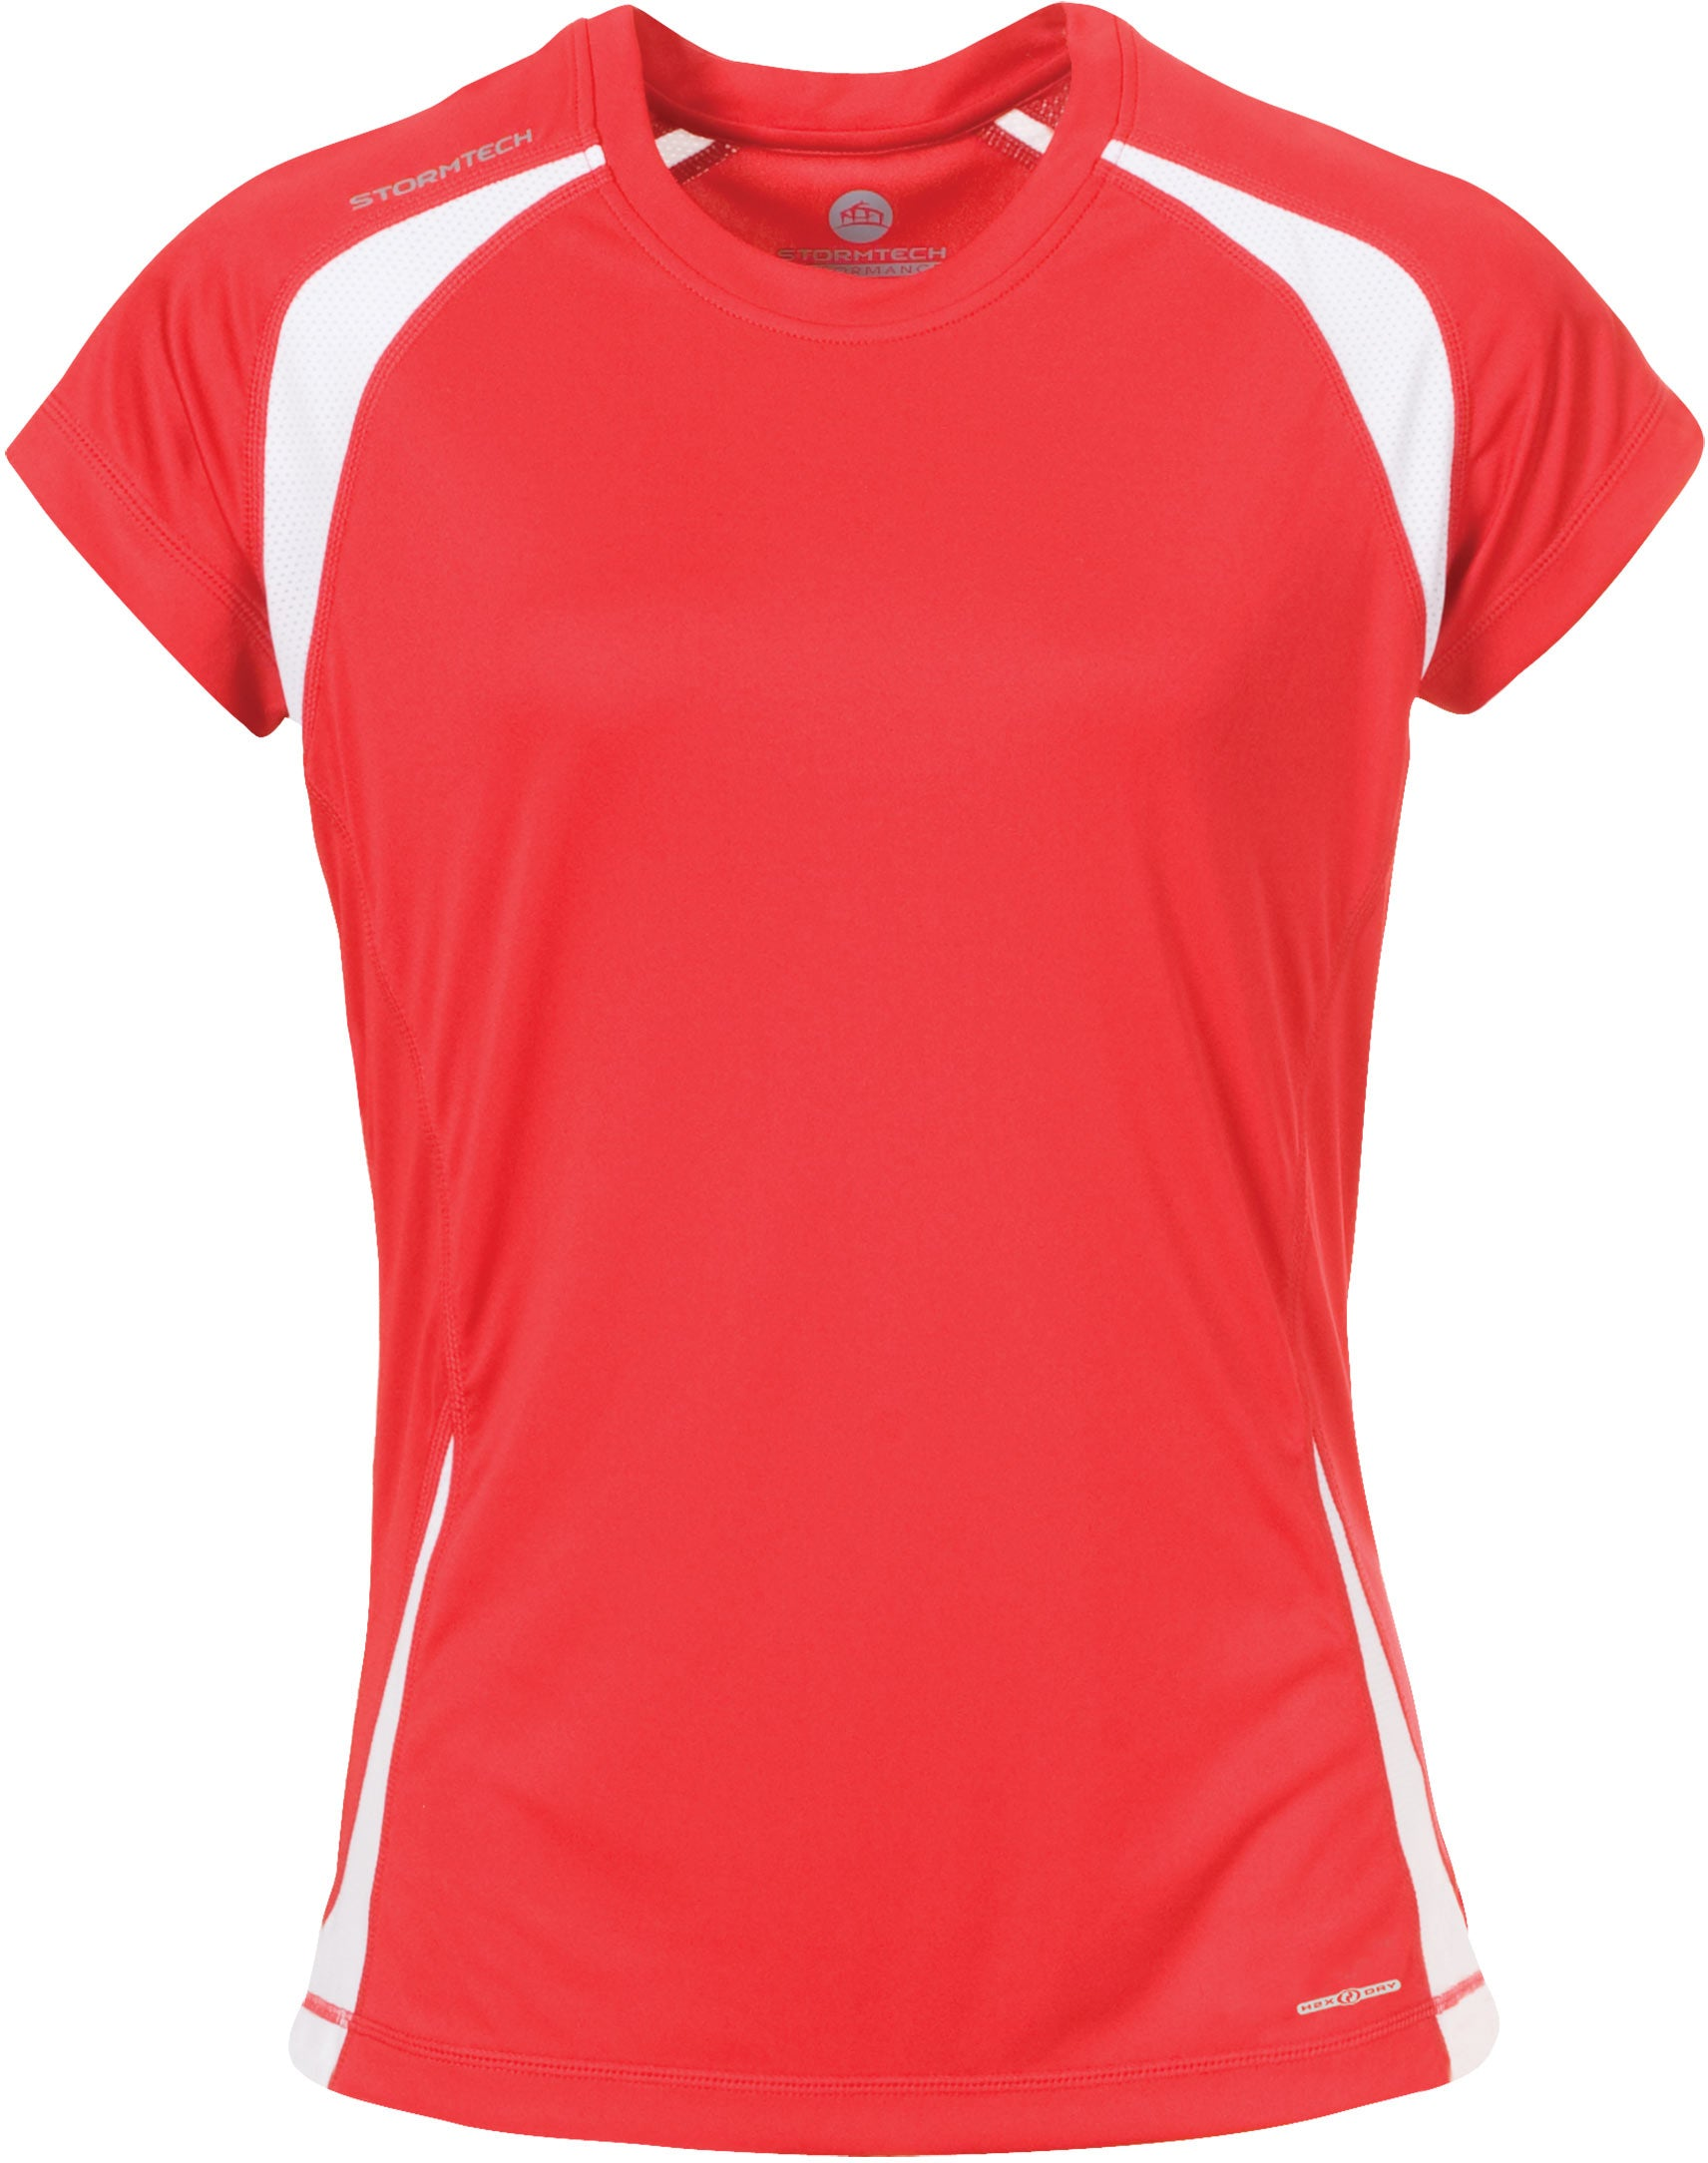 STORMTECH LADIES H2X-DRY® CLUB JERSEY TEE